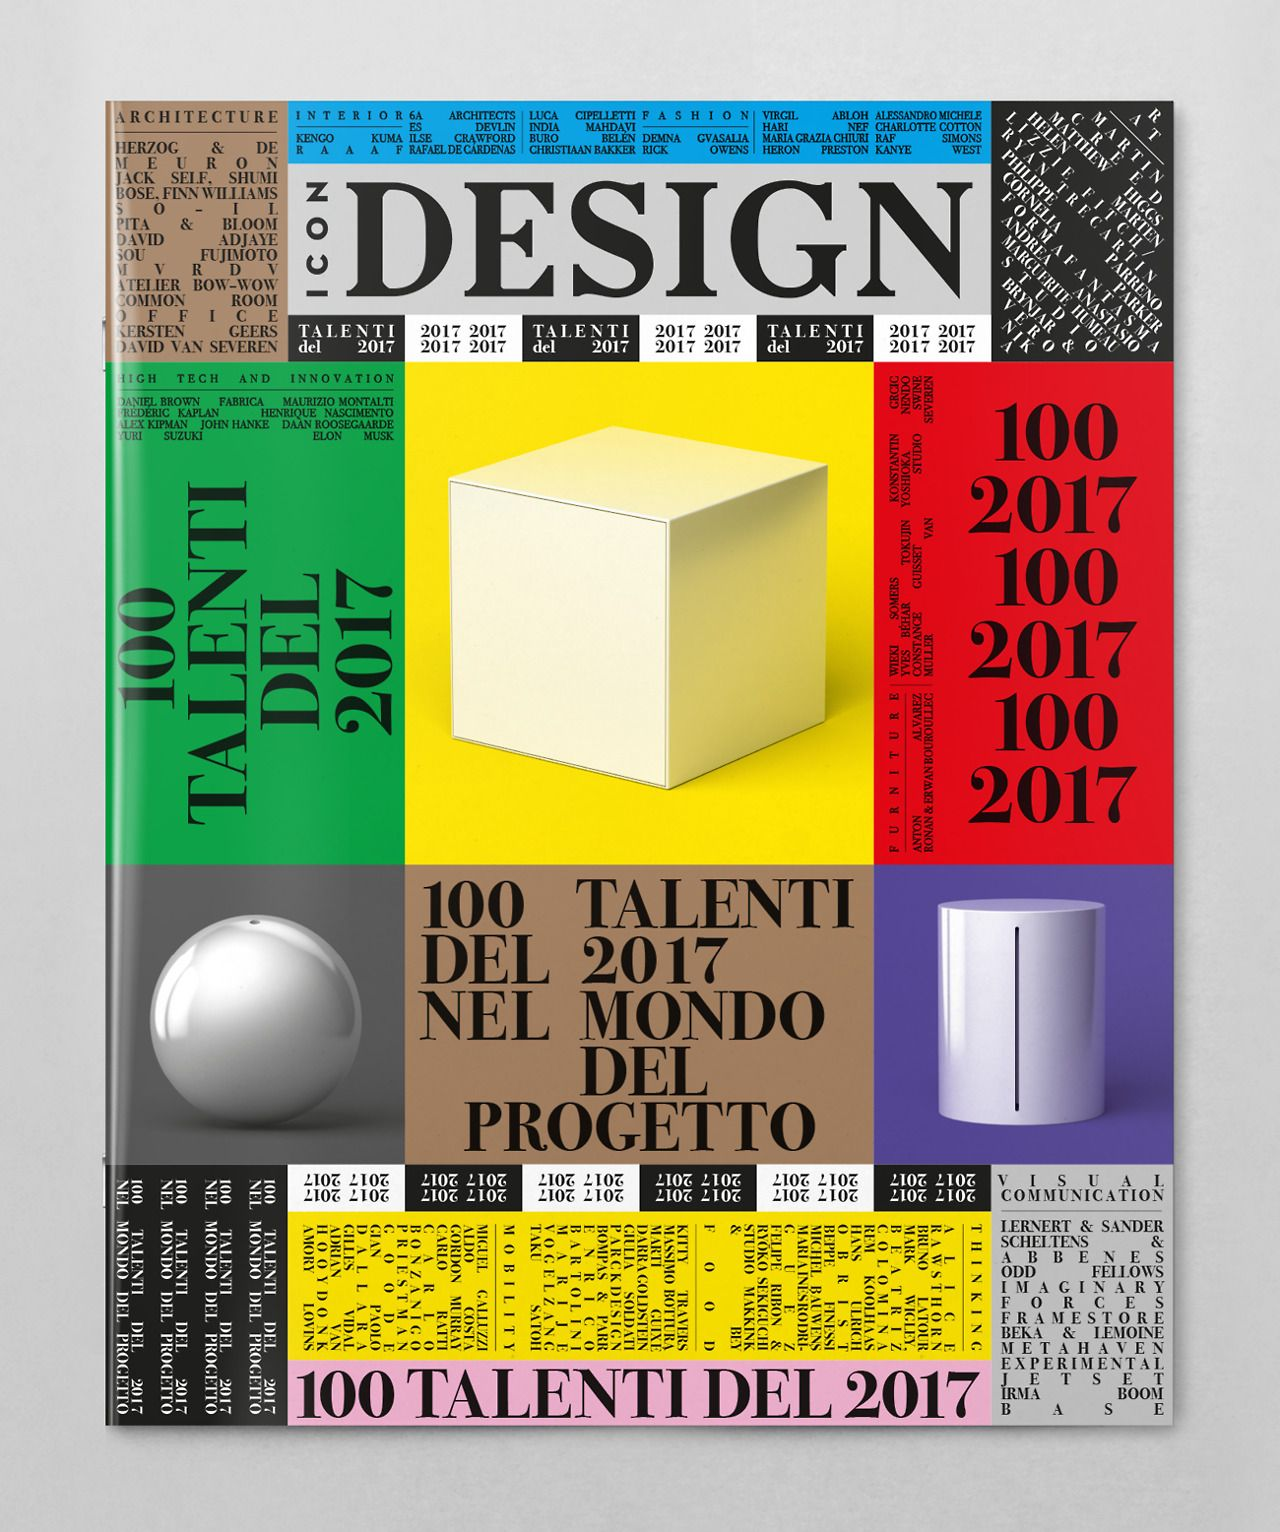 ultrazapping - designeverywhere: Icon Design Mag